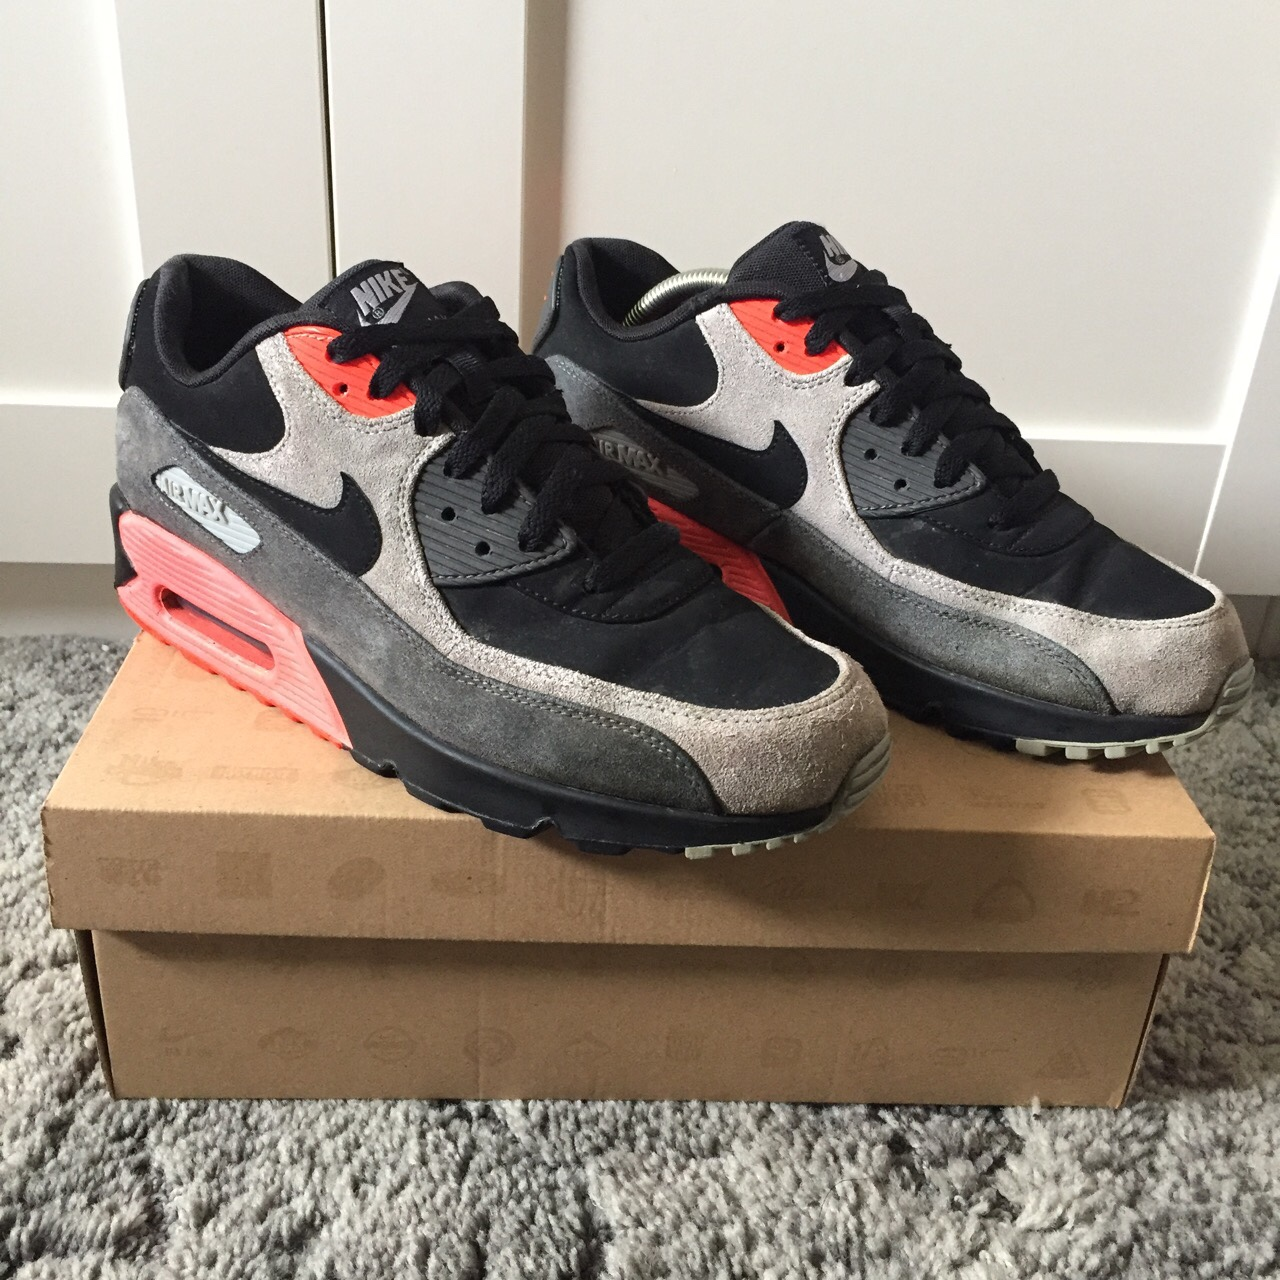 Nike Air Max 90 Black Ash Grey Total Crimson